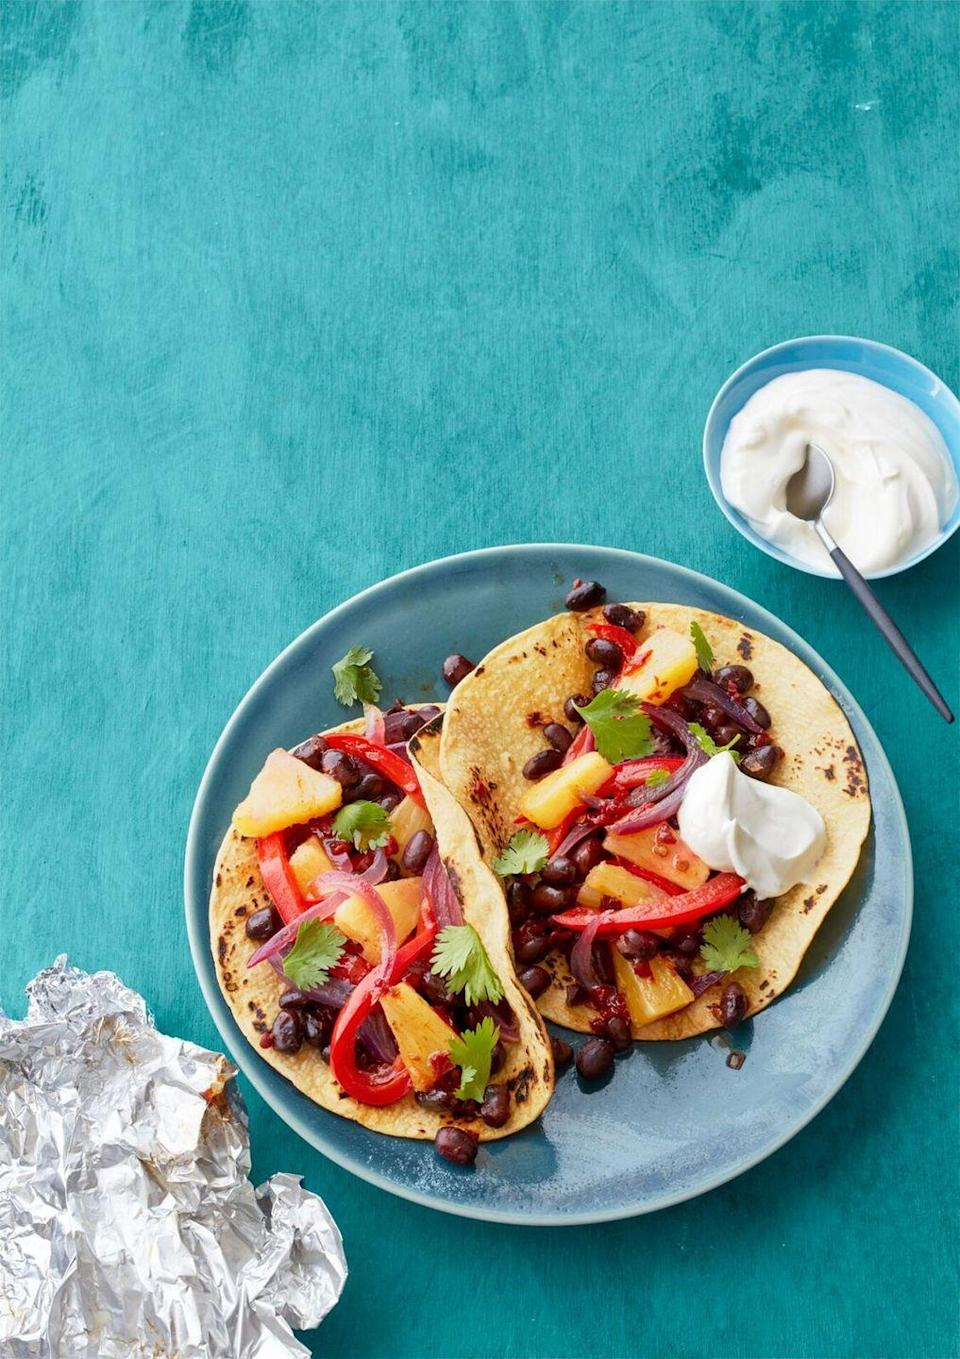 """<p>Mexican goes meatless with these sweet and smoky vegetarian fajitas.</p><p><a href=""""https://www.womansday.com/food-recipes/food-drinks/recipes/a55780/potsticker-stir-fry-recipe/"""" rel=""""nofollow noopener"""" target=""""_blank"""" data-ylk=""""slk:Get the Pineapple and Black Bean Fajitas recipe."""" class=""""link rapid-noclick-resp""""><em>Get the Pineapple and Black Bean Fajitas recipe.</em></a></p>"""